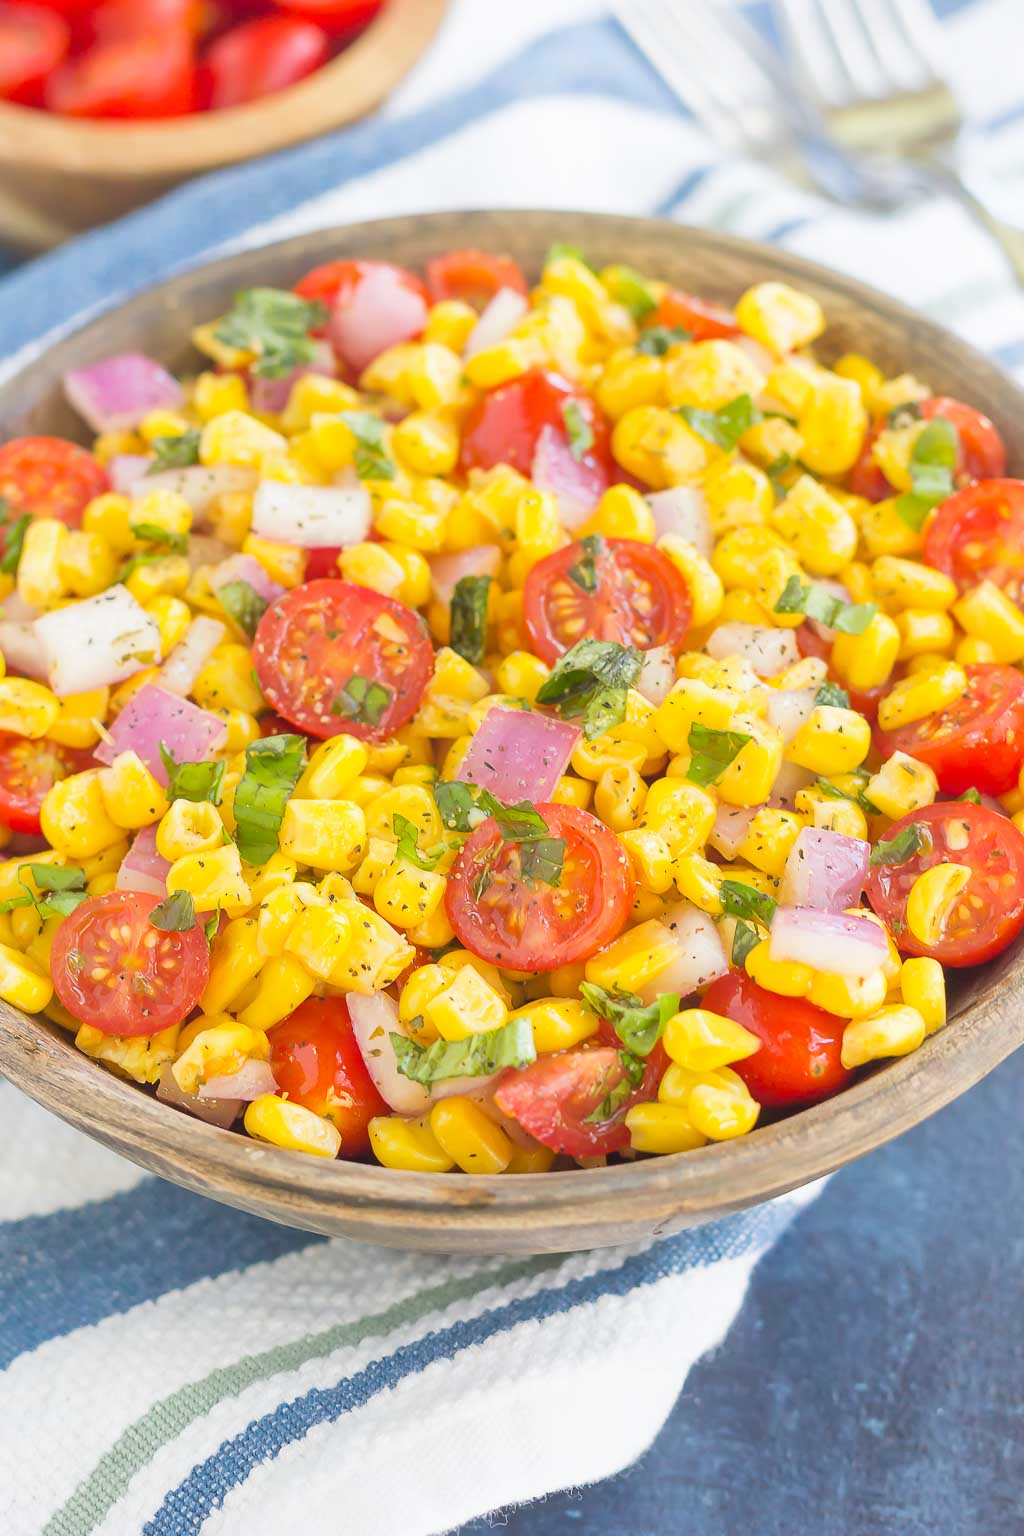 With fresh corn cut straight from the cob, cherry tomatoes, spices and a light dressing, this corn and tomato salad is perfect for a summer lunch or dinner! # corn #cornsalad #tomato #tomatosalad #corntomatosalad #salad #saladrecipe #summersalad